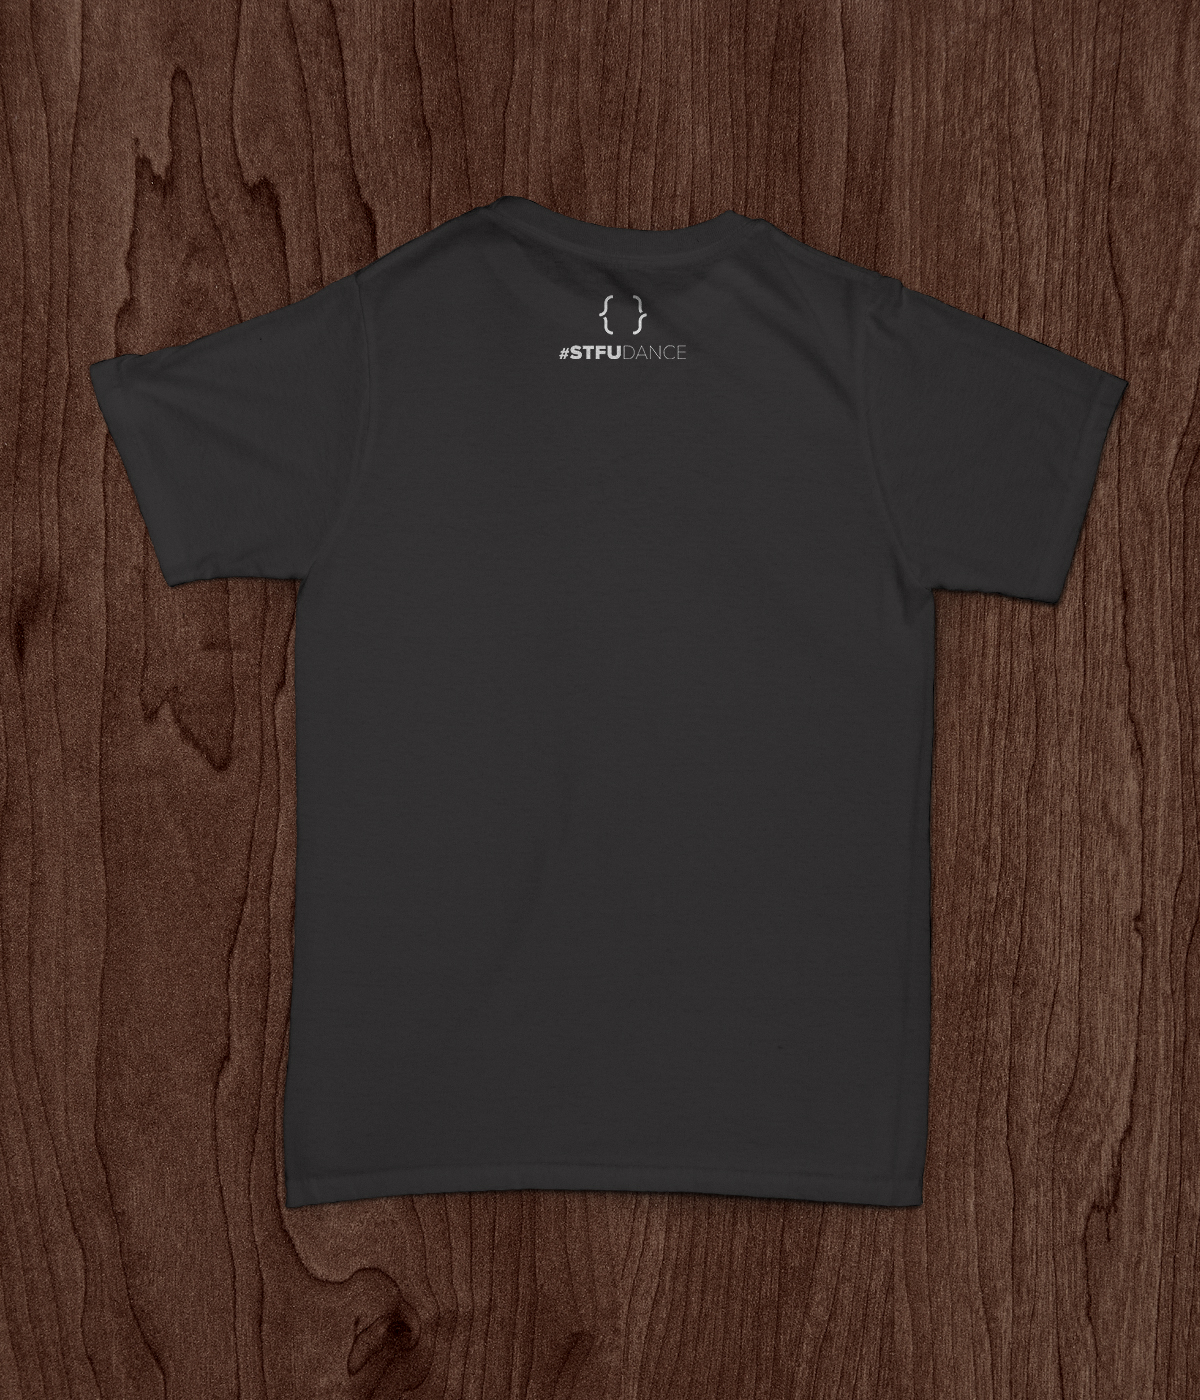 the gallery for gt blank black t shirt mockup